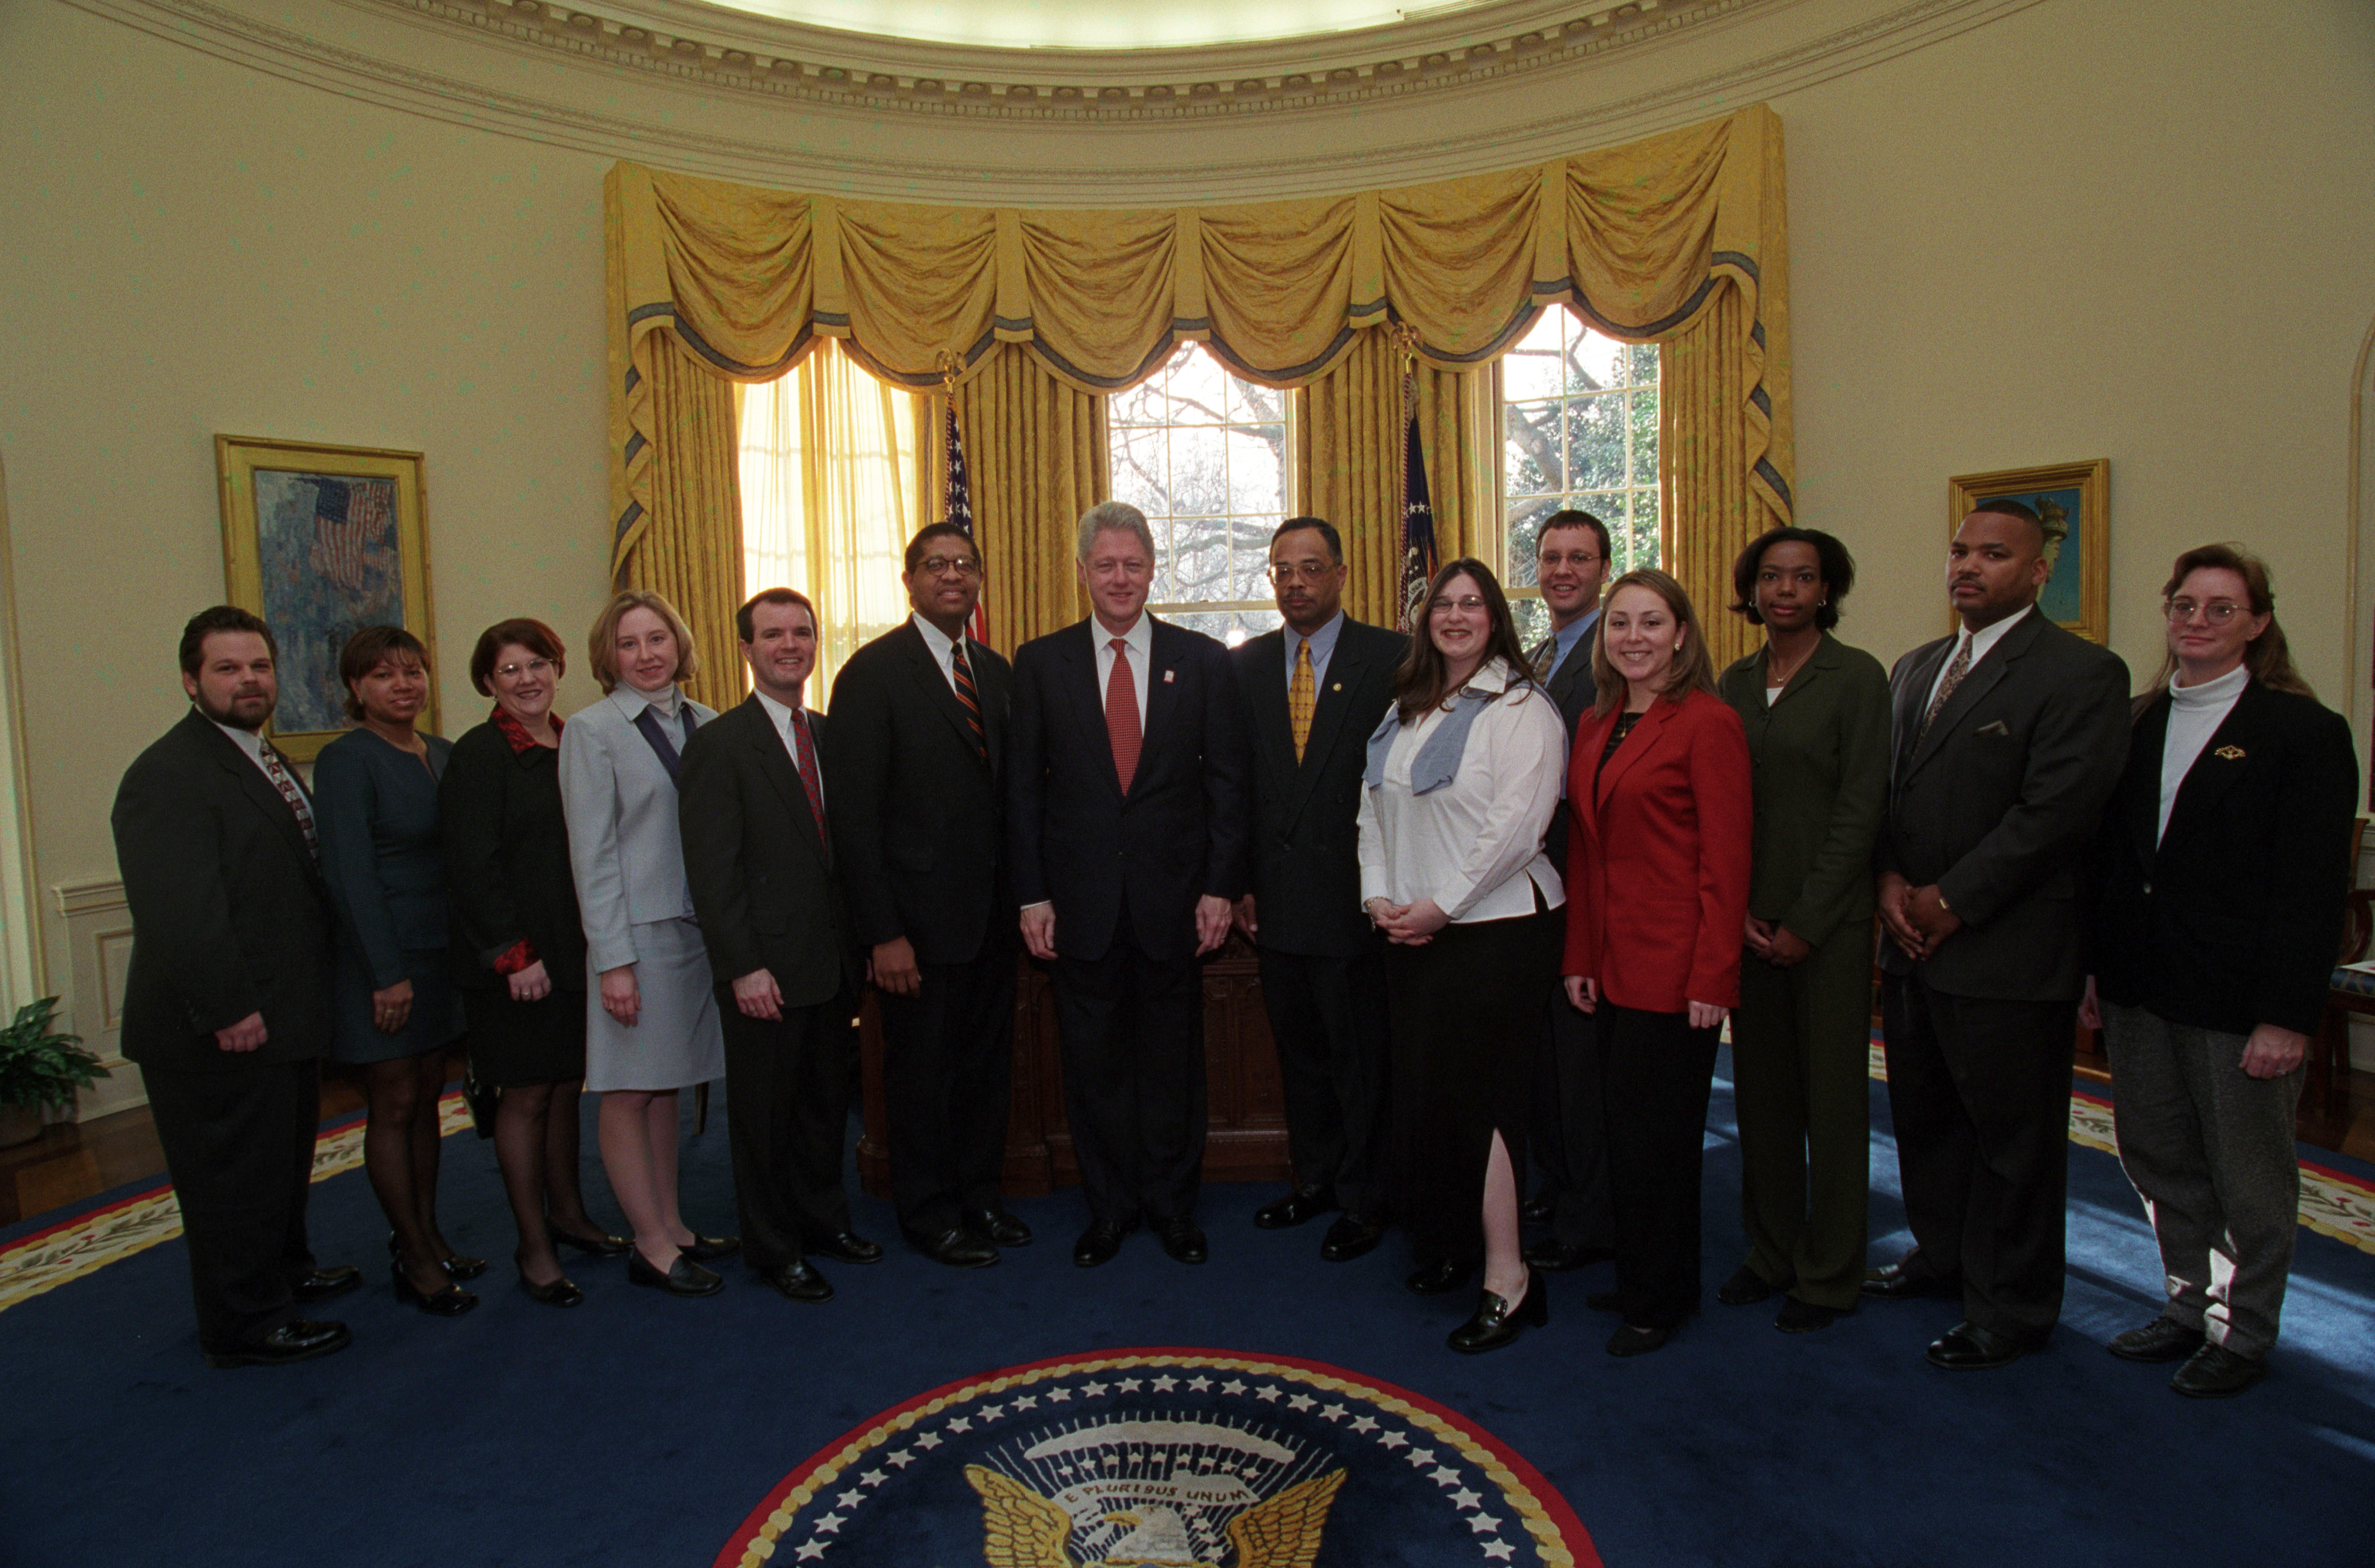 President Clinton joins the staff of the Management and Administration Office for a group photo in the Oval Office.